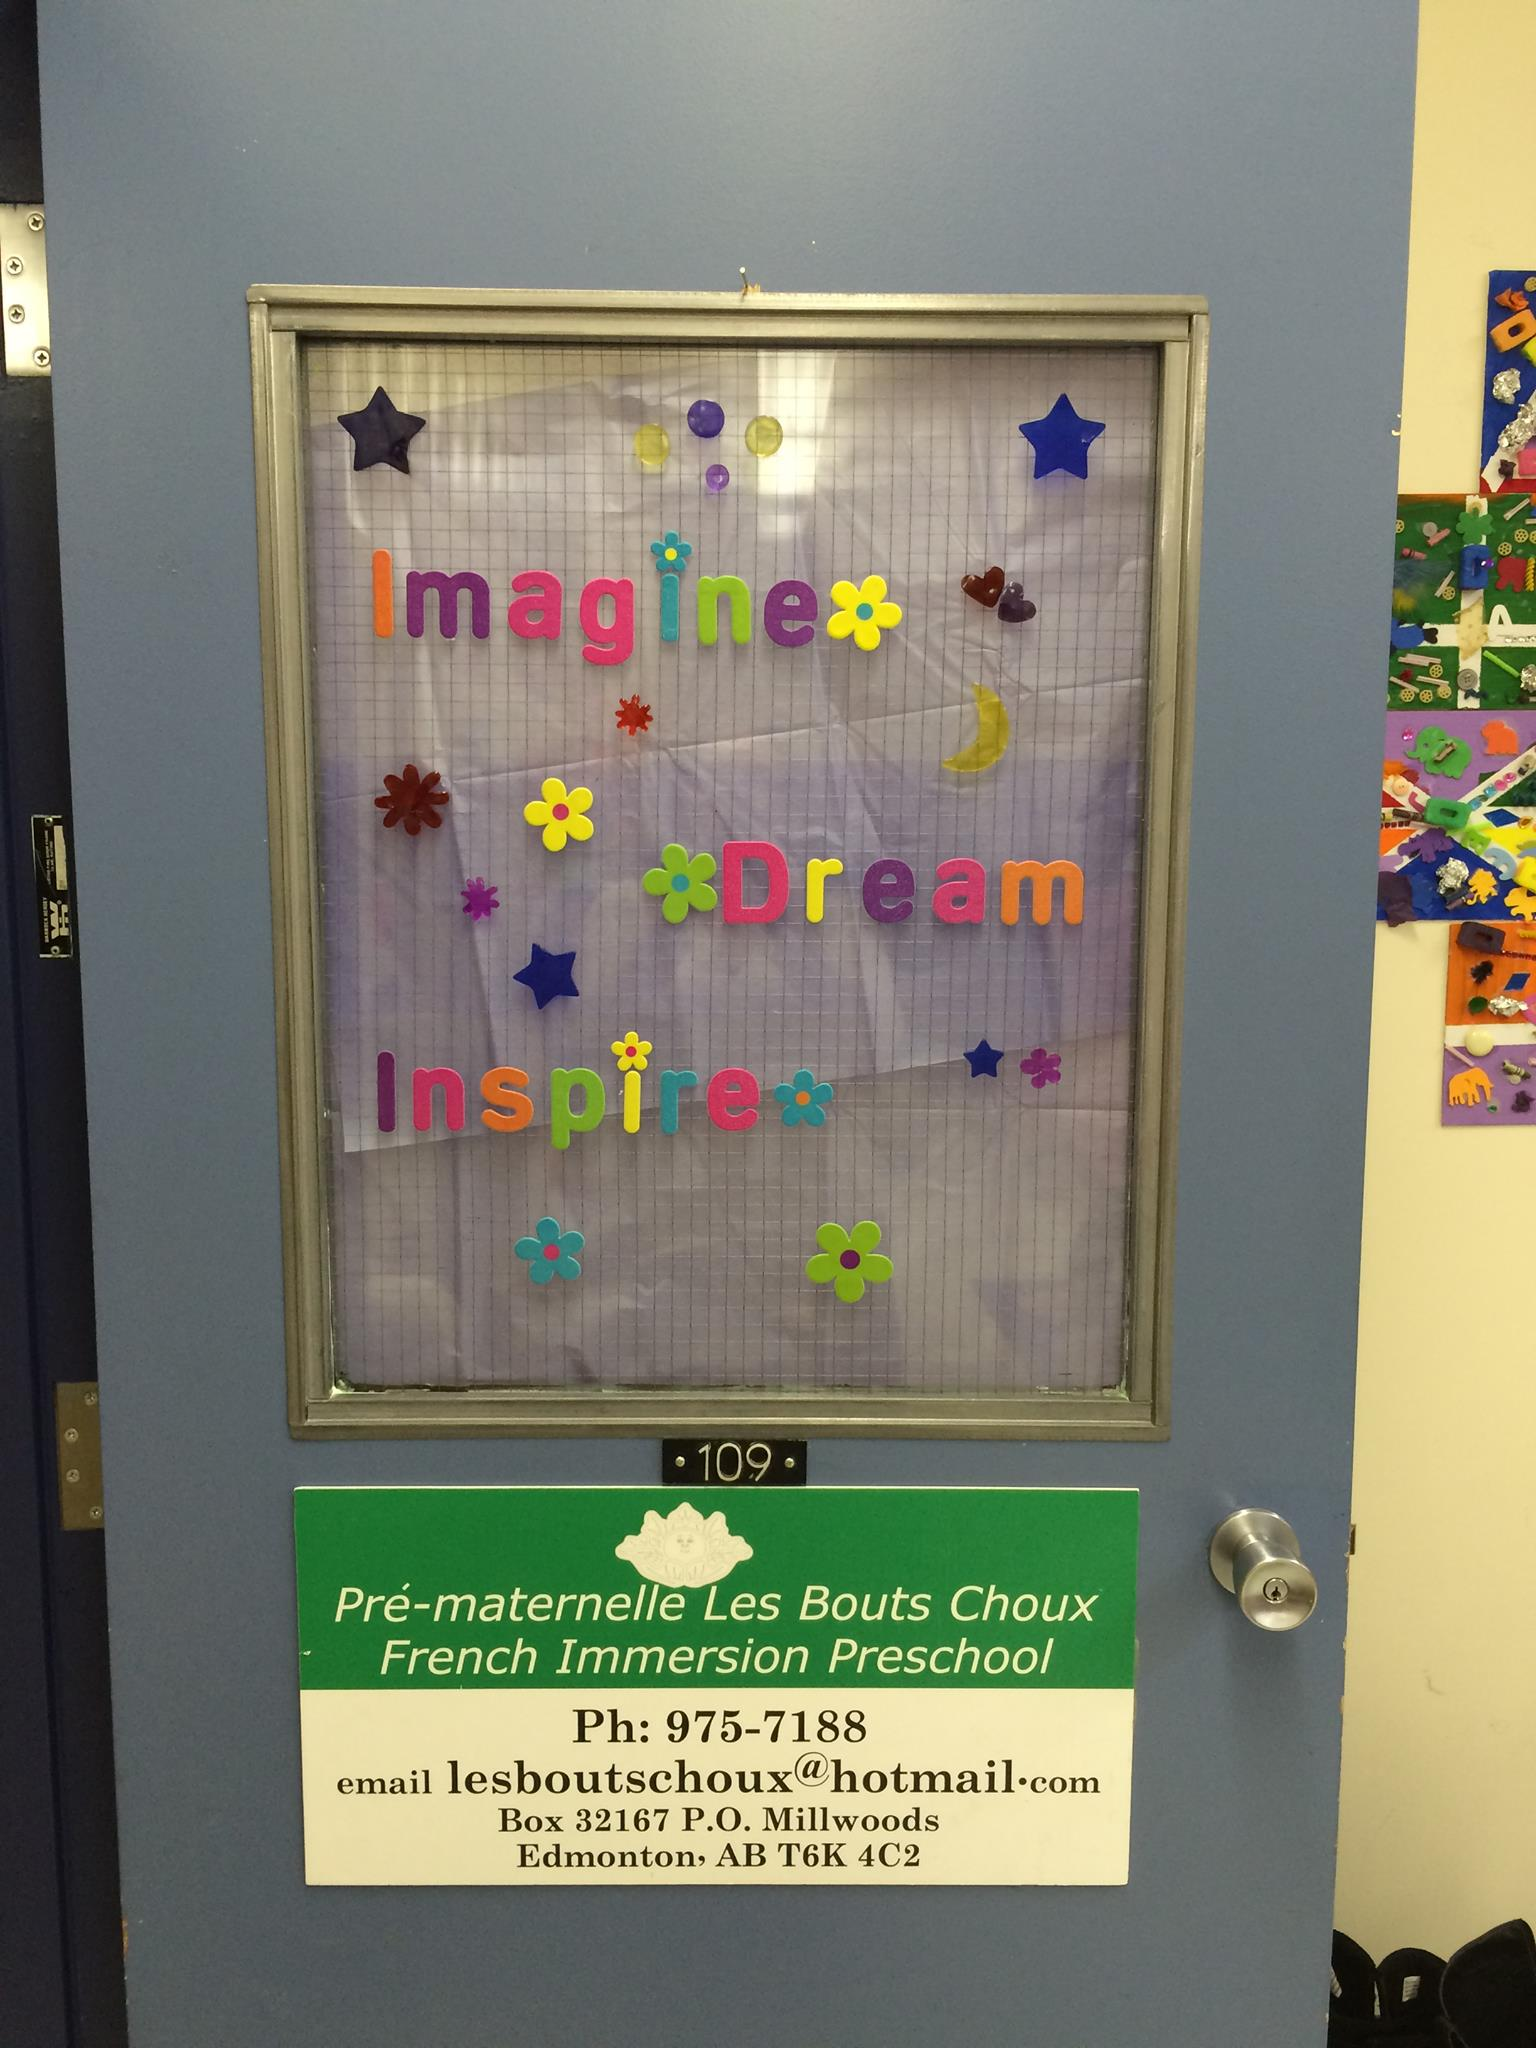 Les Bouts D'Choux French Immersion Preschool